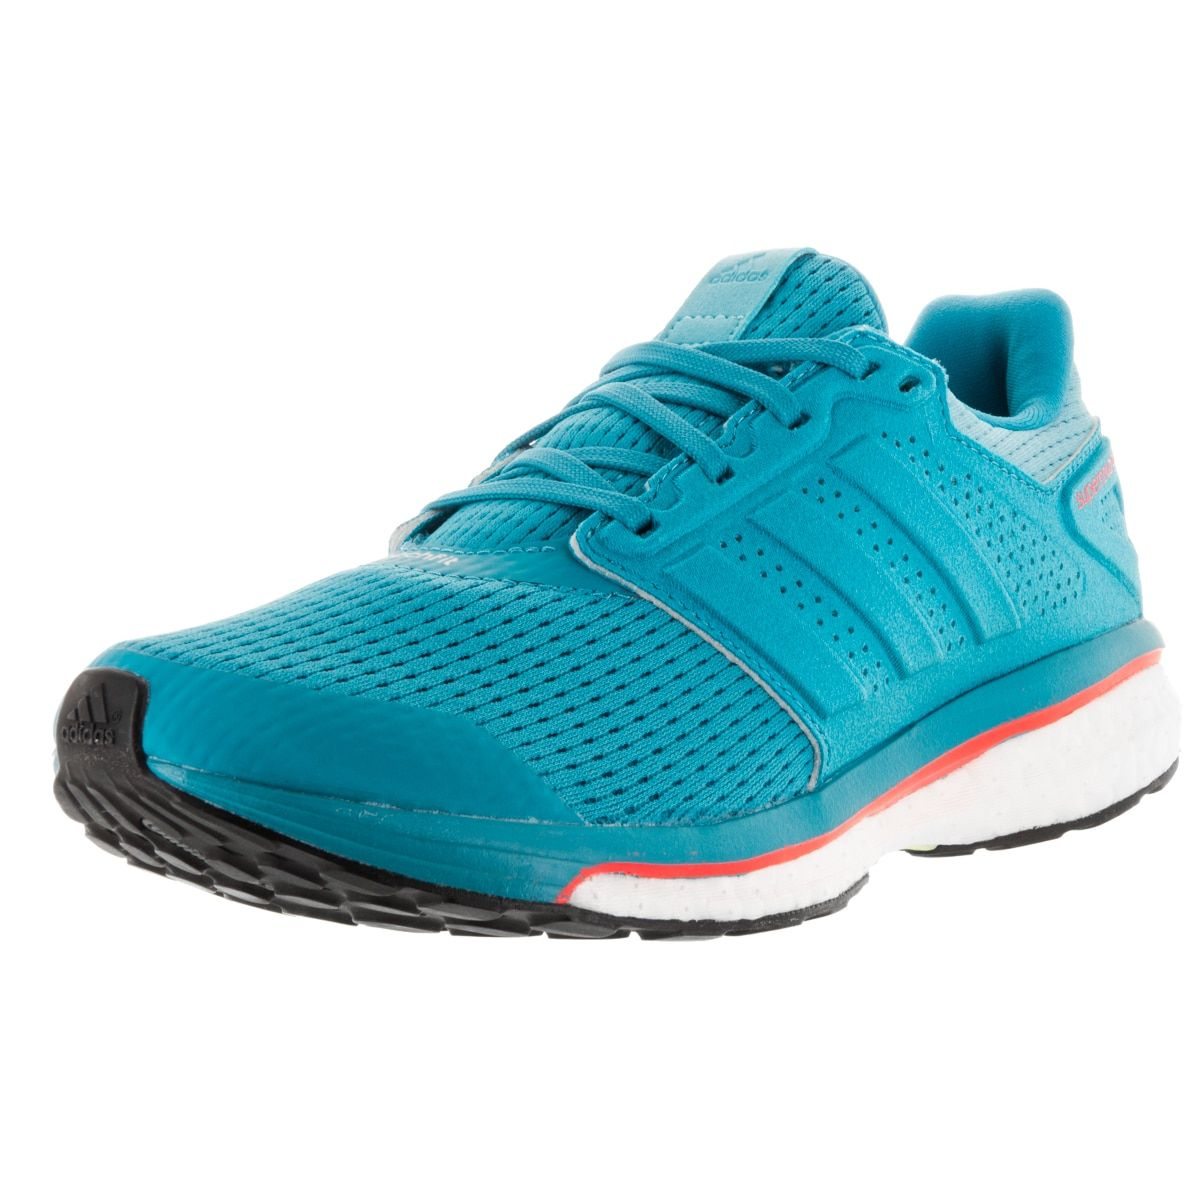 Adidas Women's Supernova Glide Craft Running Shoe